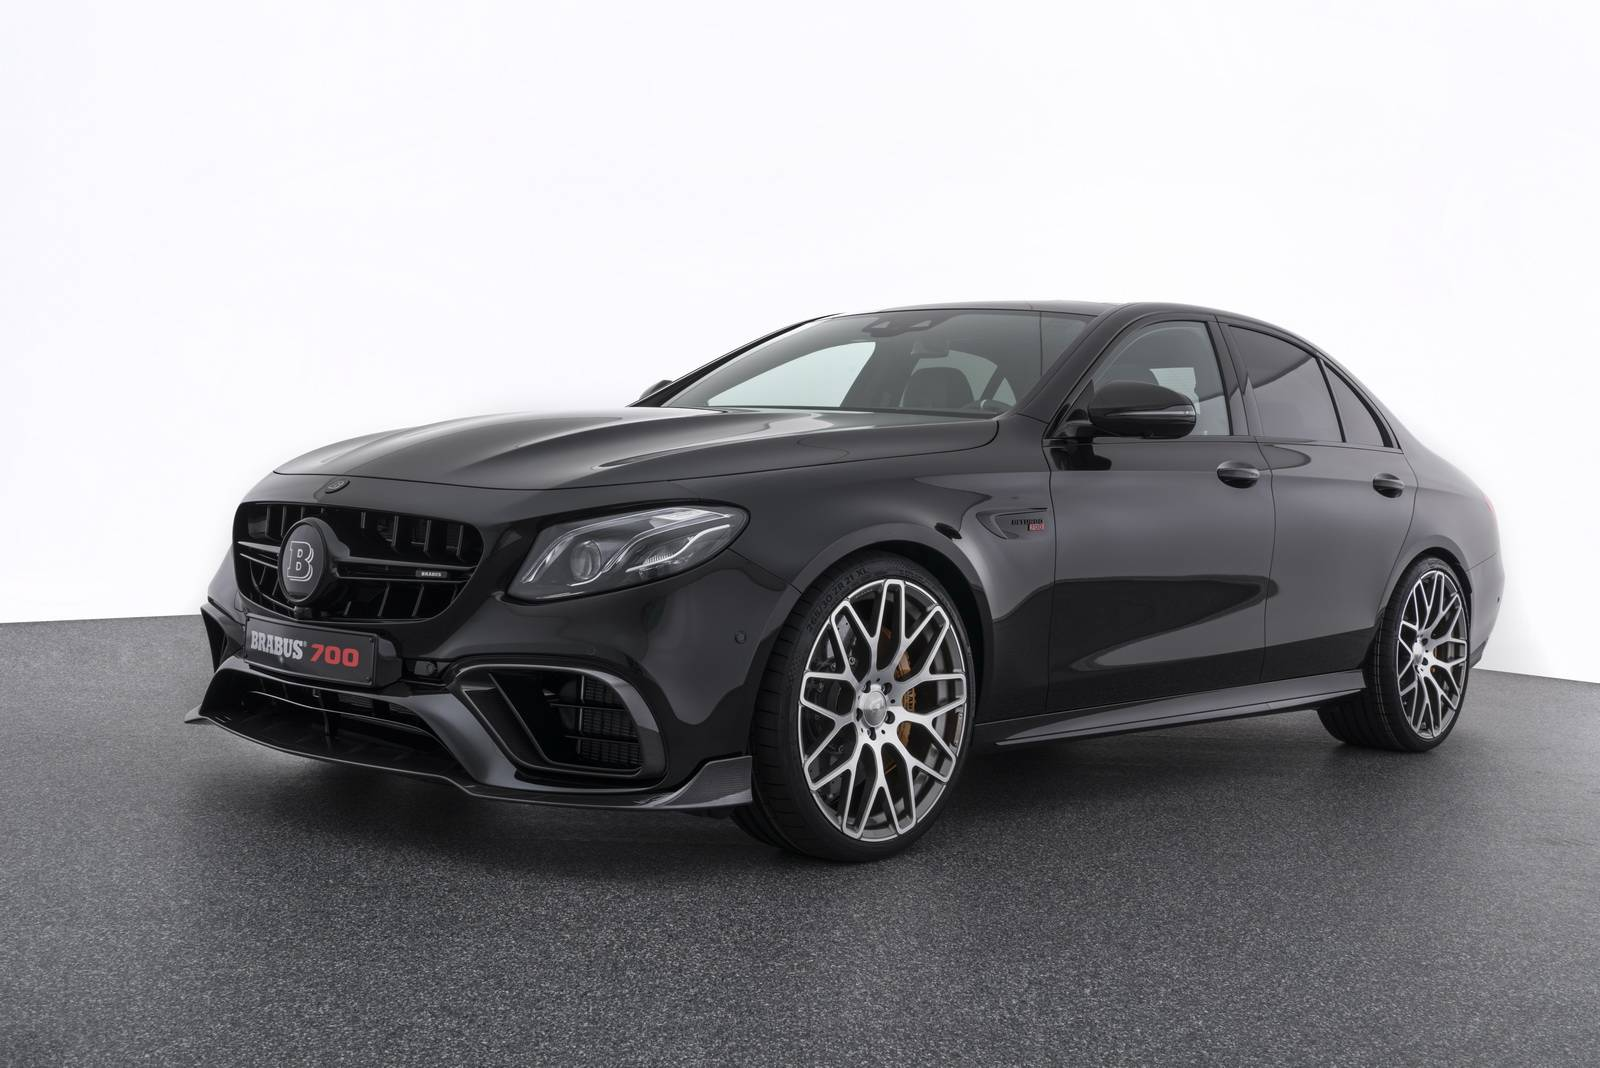 11903 Dimensions Mercedes Cls 500 further Official Brabus 700 Mercedes Amg E63 as well 1103369 2017 Mercedes Benz S Class Cabriolet First Drive Review moreover Mercedes Cj1 moreover Showthread. on mercedes cl 500 coupe